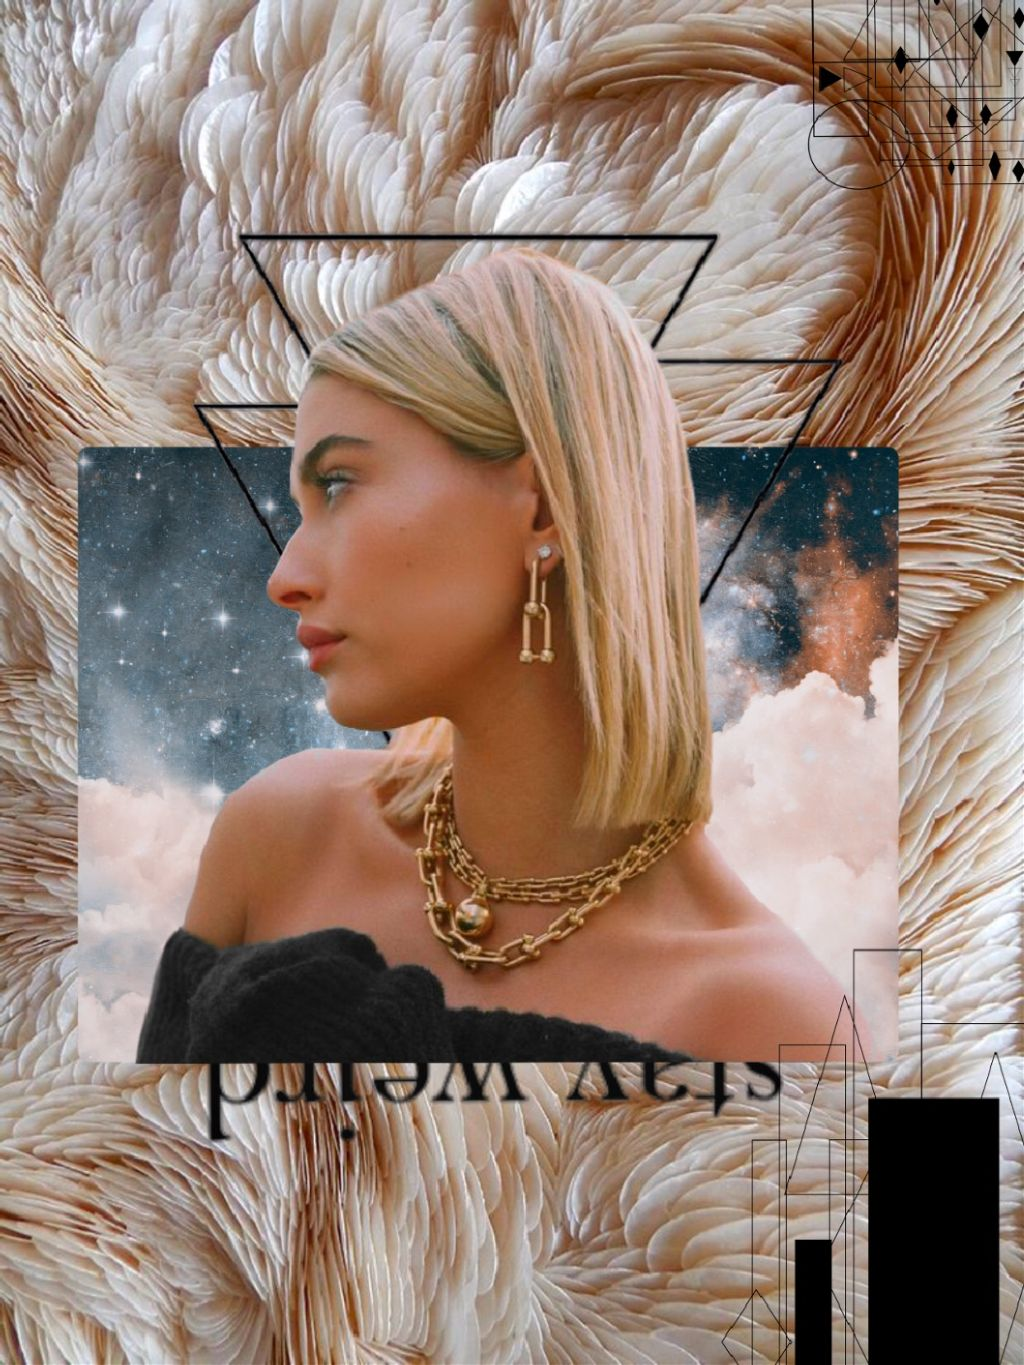 #freetoedit #haileybaldwin #model #pastel #wallpaper #bieber #mannequin #supermodel #2019